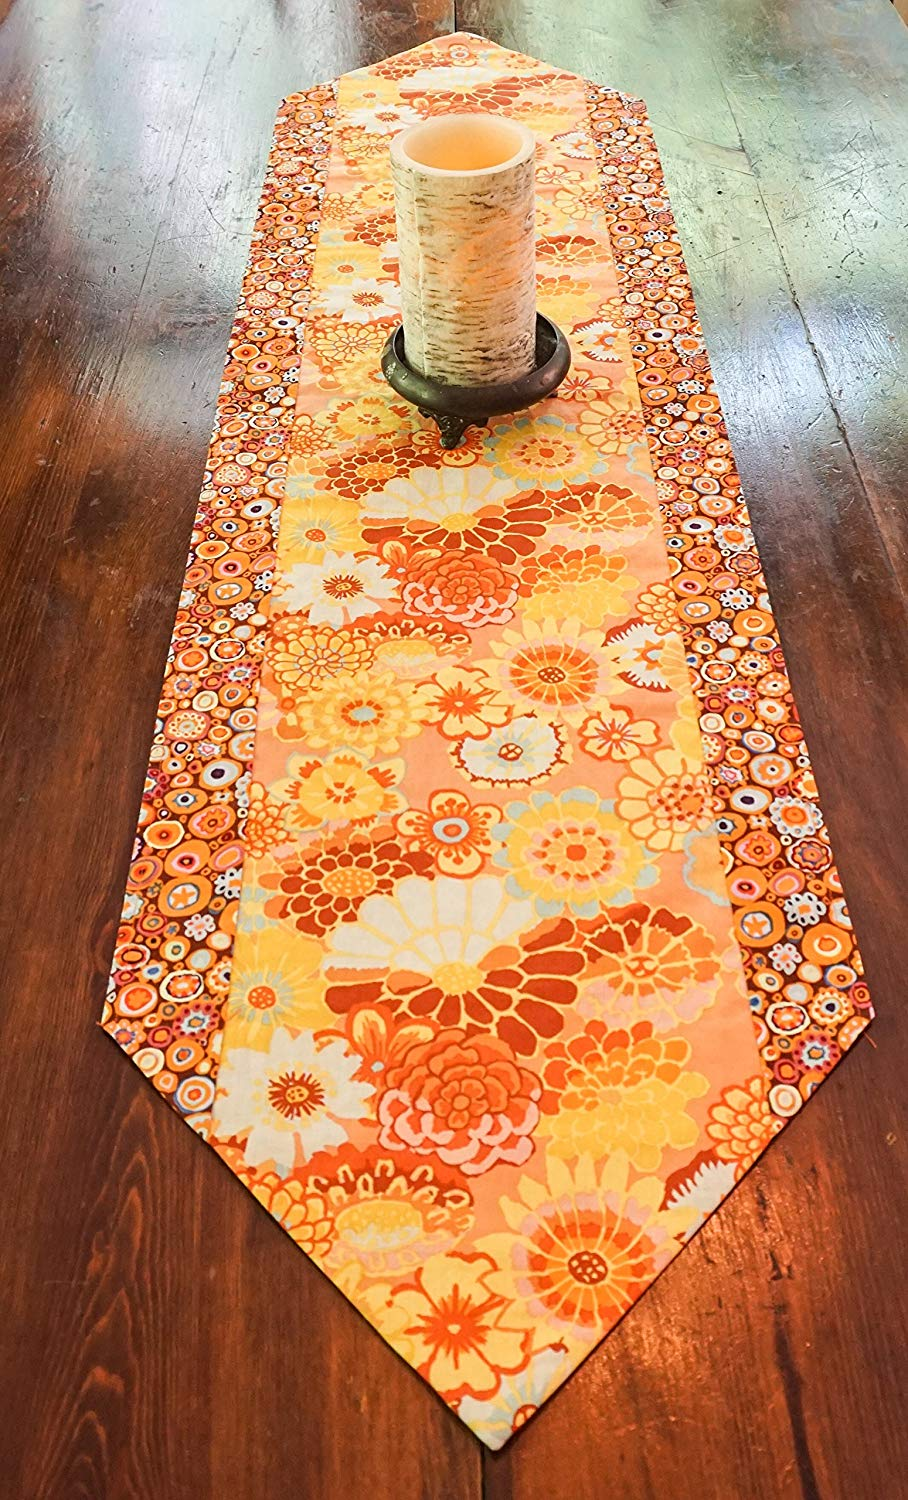 Floral Table Runner-Tableware-Boho Decor-Cottage Decor-Party Decorations-Summer Party-Gift